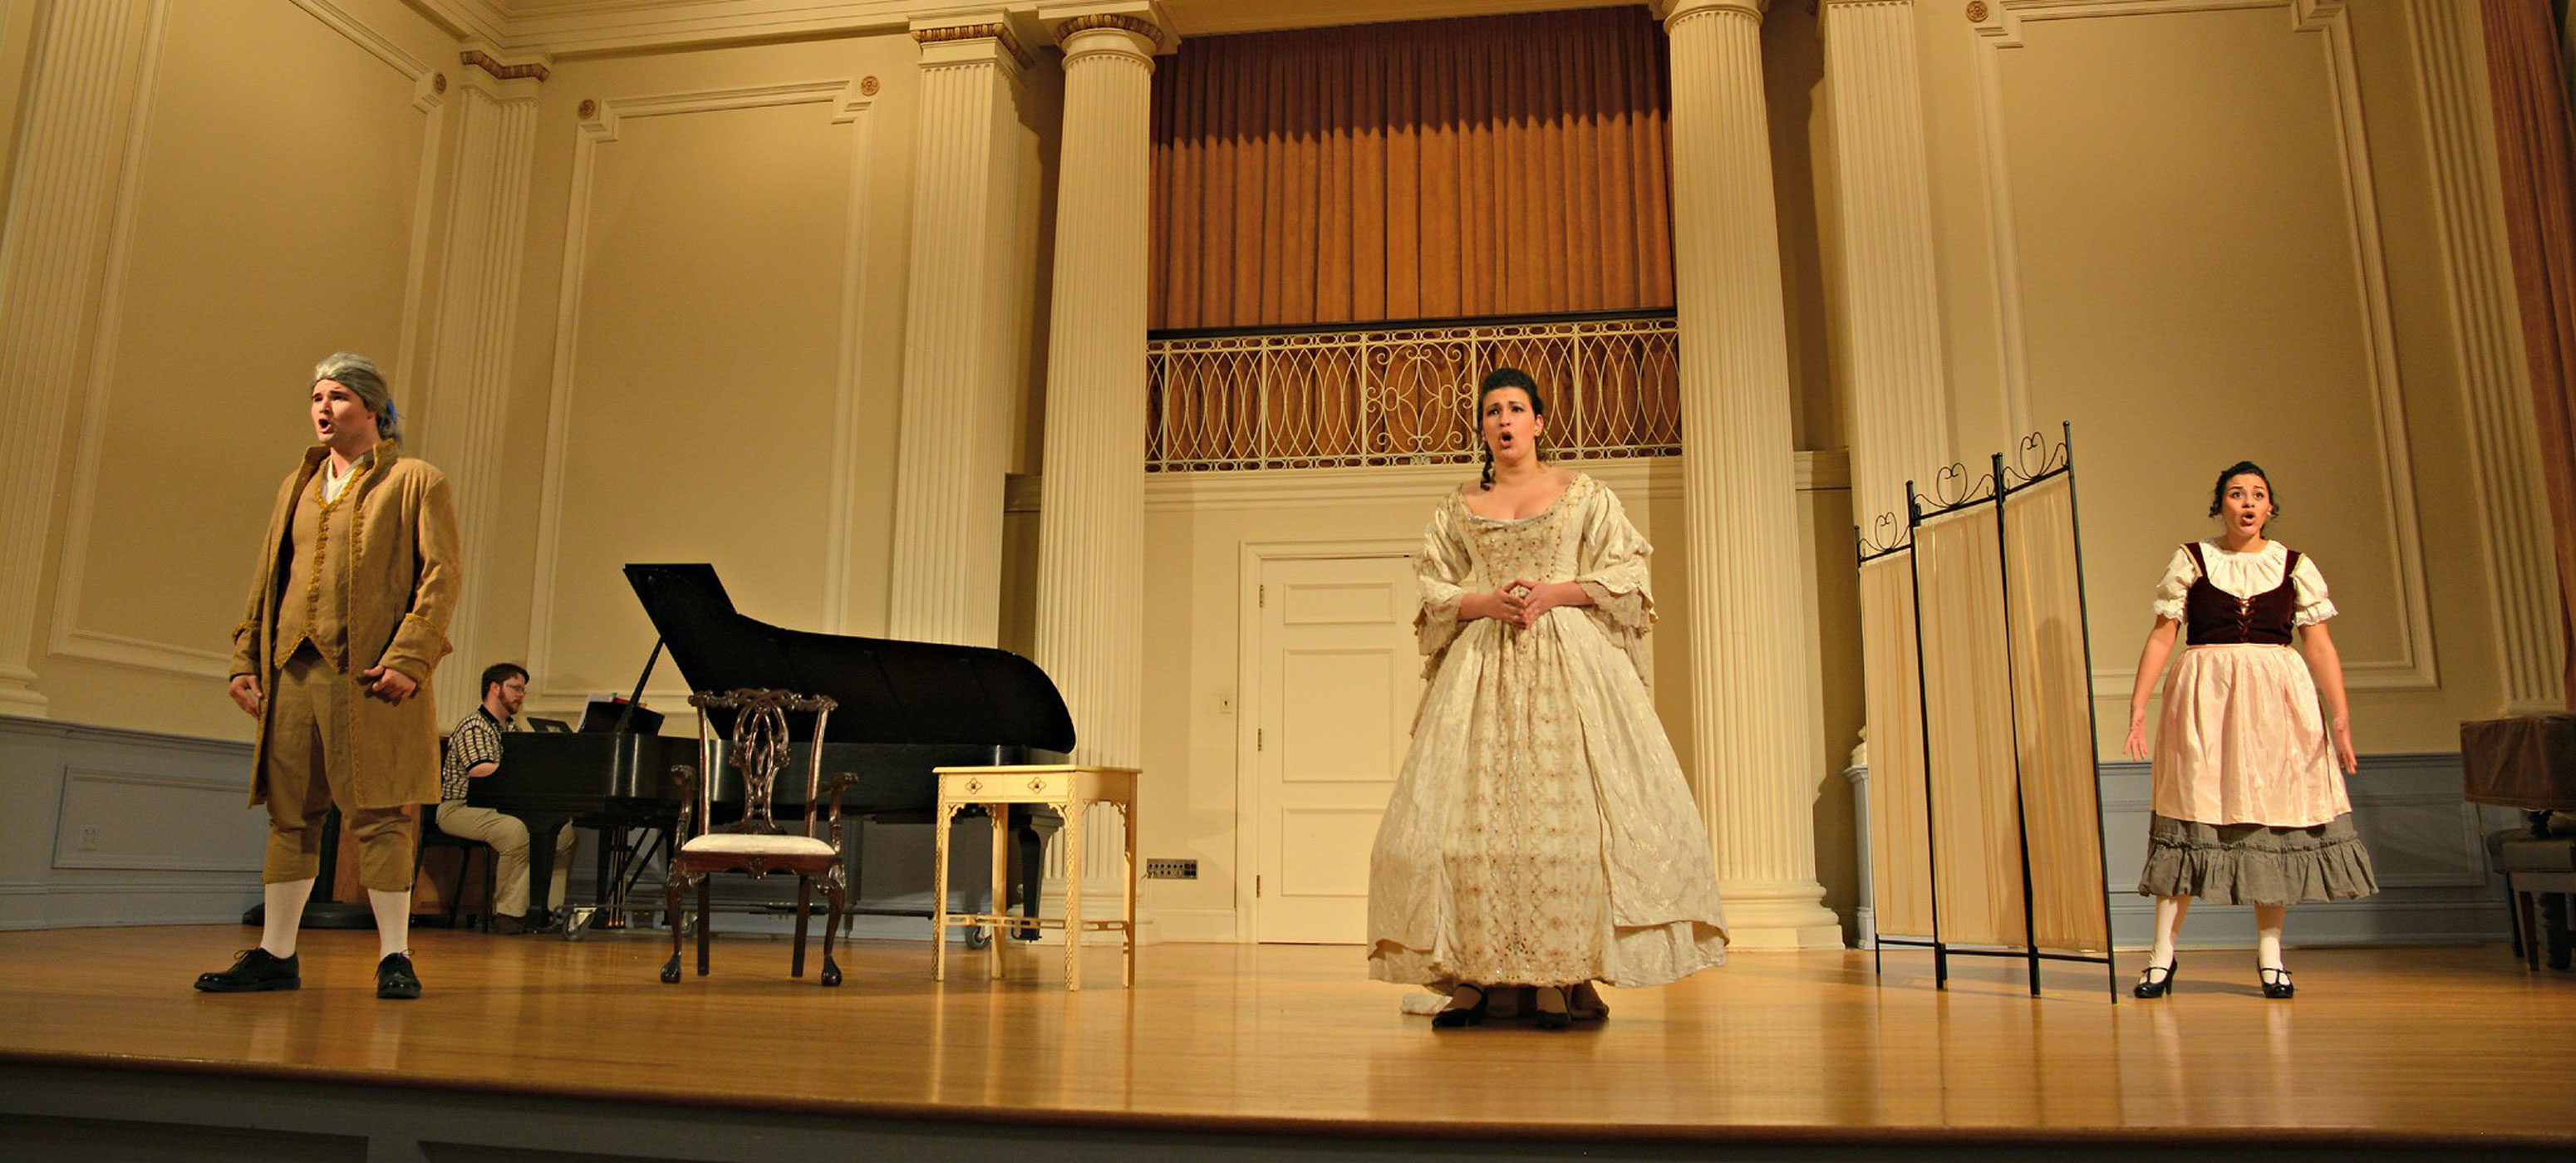 Anna Lipowitz performing opera in period attire